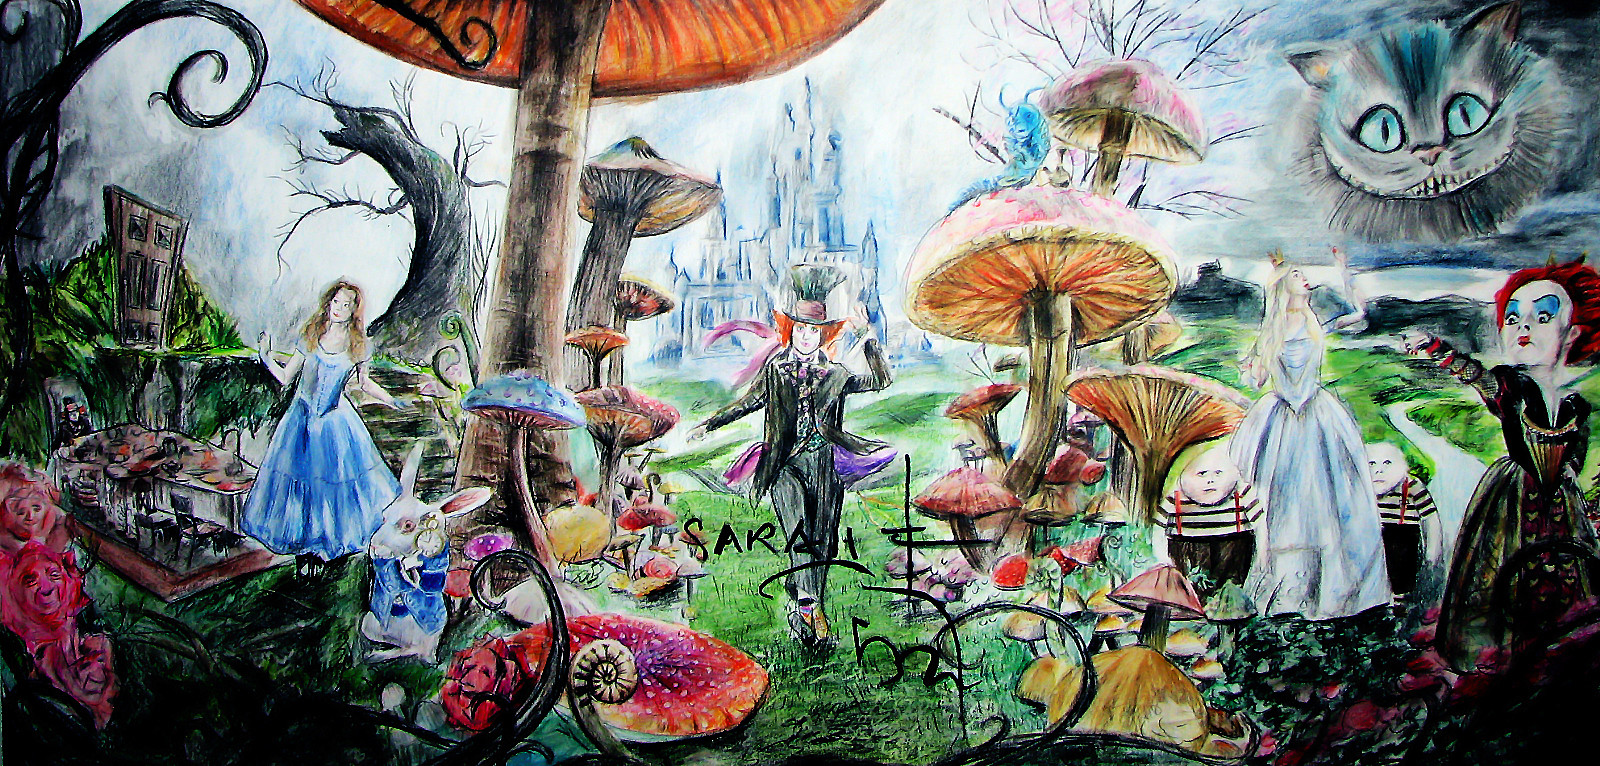 alice in wonderland 2 essay Free summary and analysis of wonderland, chapter 2 in lewis carroll's alice's adventures in wonderland and through the looking-glass that won't make you snore we promise.